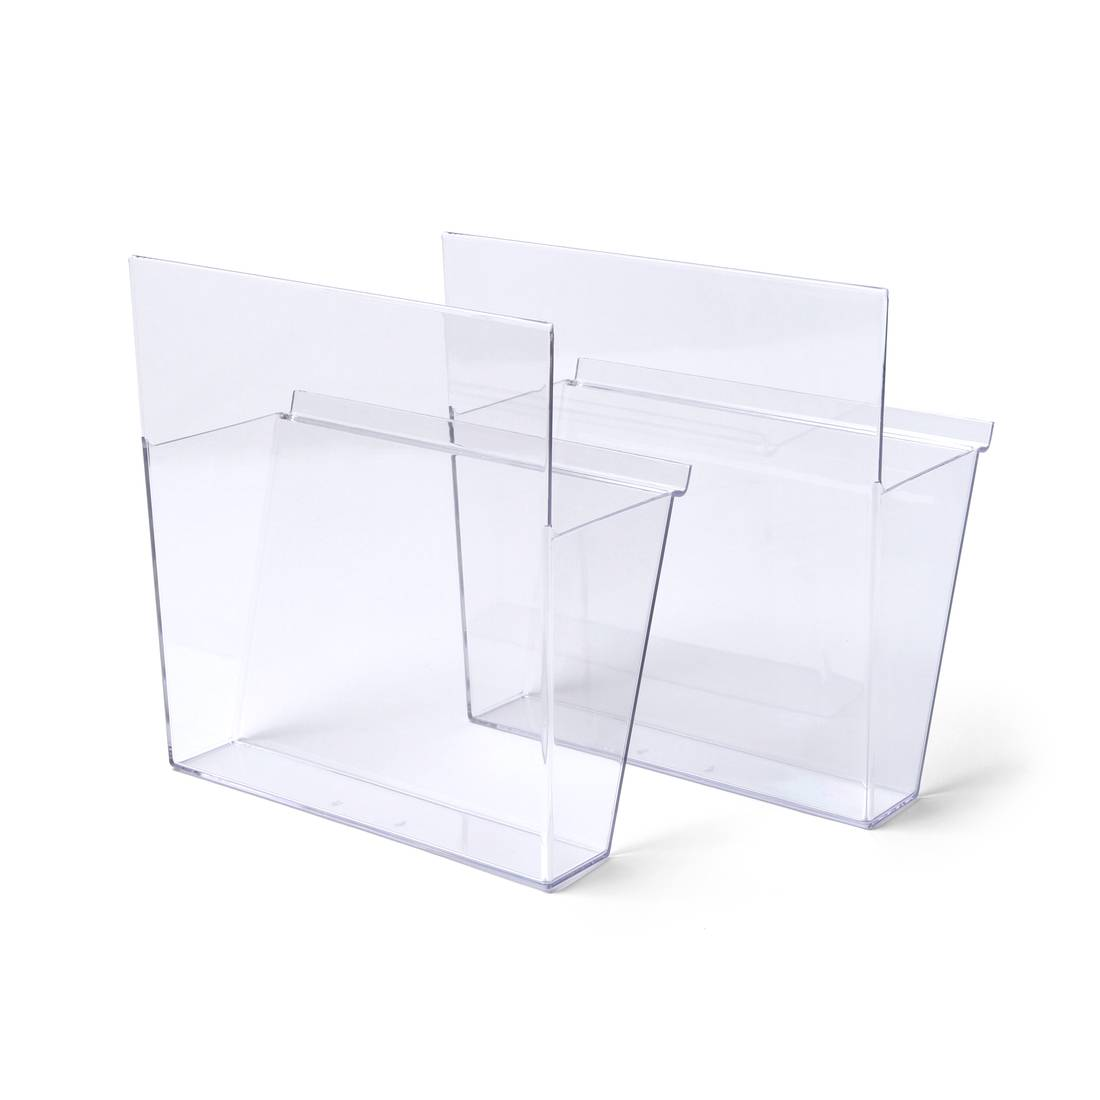 Acrylic shelf for BRT leaflet stand and wall-mounted BRT leaflet rack - 1 piece